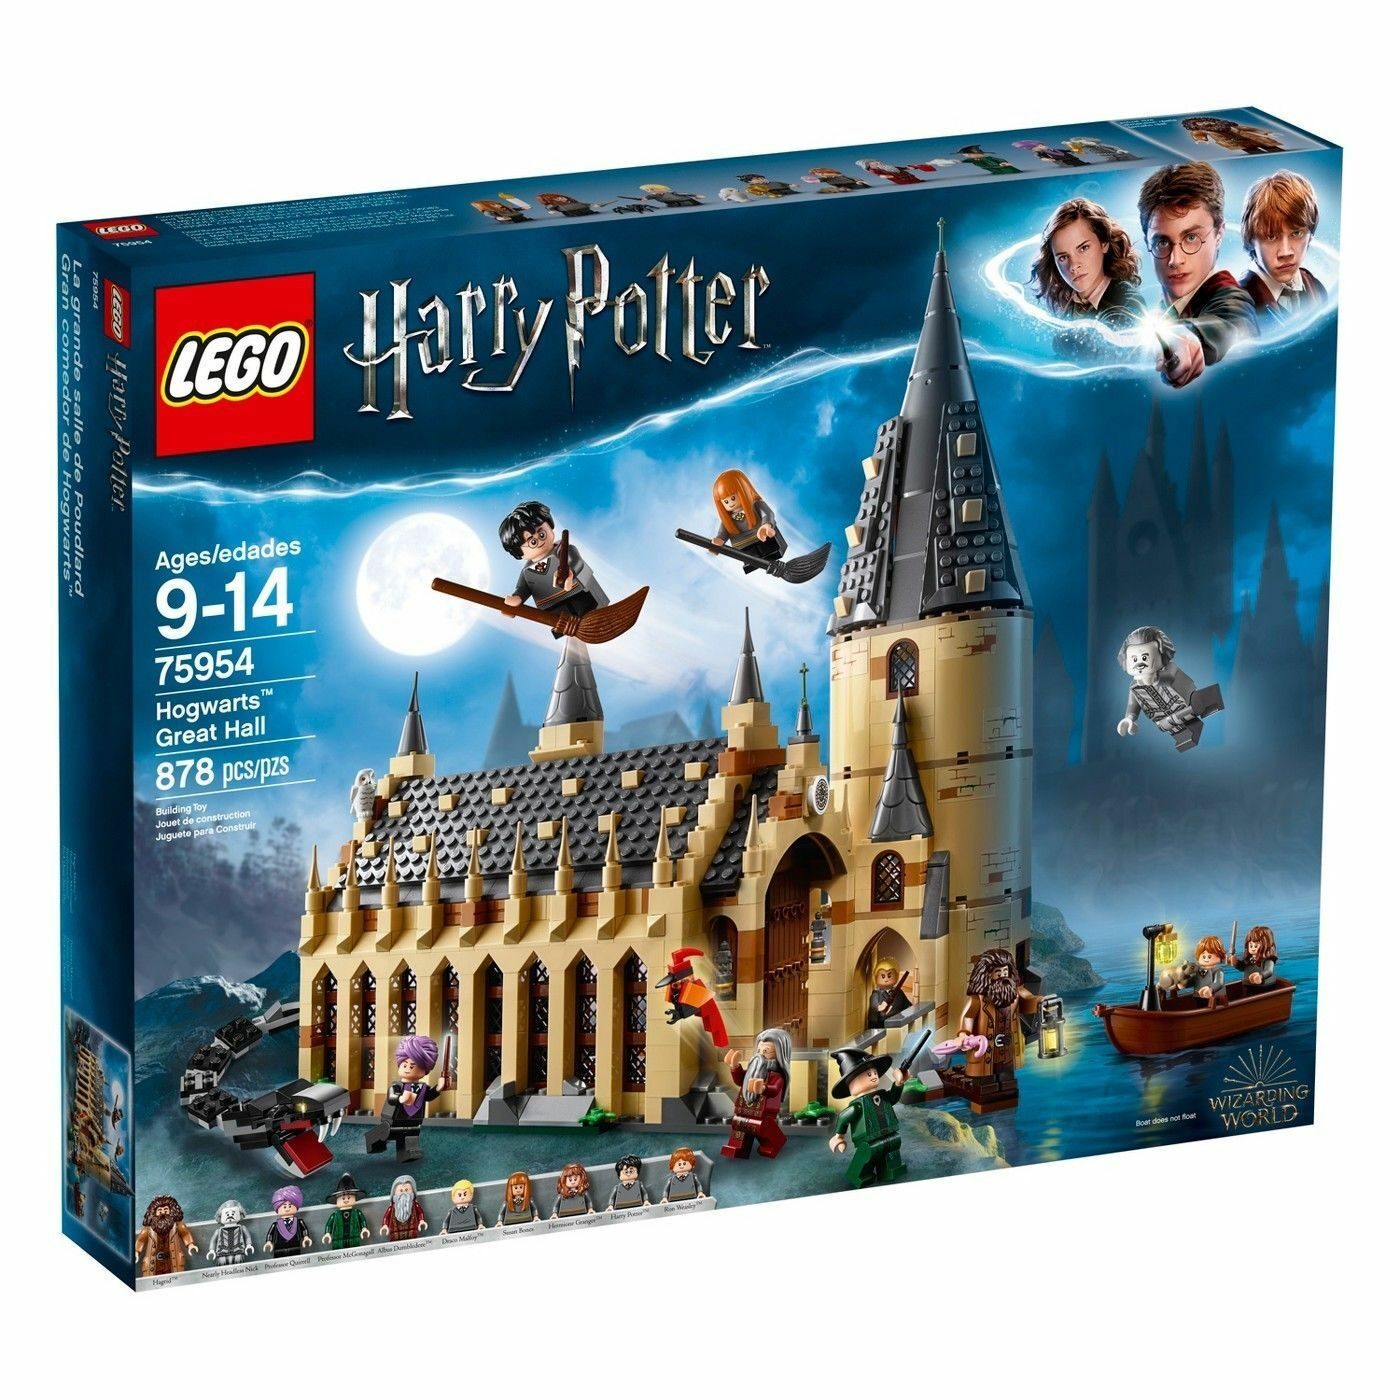 2018 LEGO HARRY POTTER HOGWARTS GREAT Htutti SET 75954  FACTORY SEALED nuovo  Garanzia del prezzo al 100%